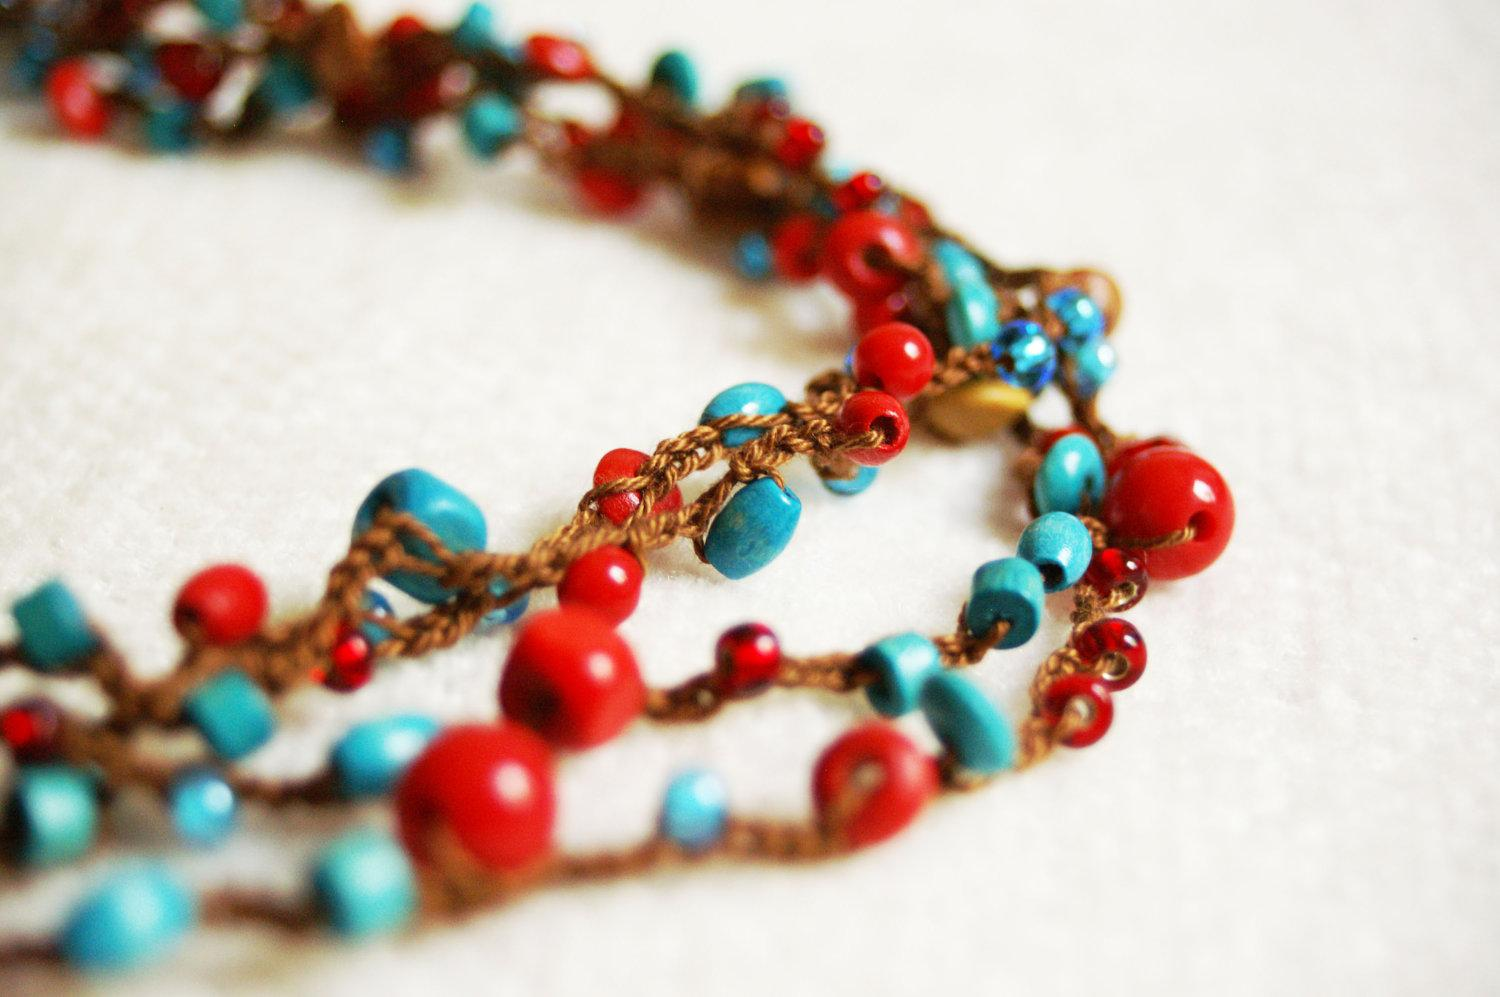 Crocheted necklace bracelet Red and turquoise by TomBjornDesigns